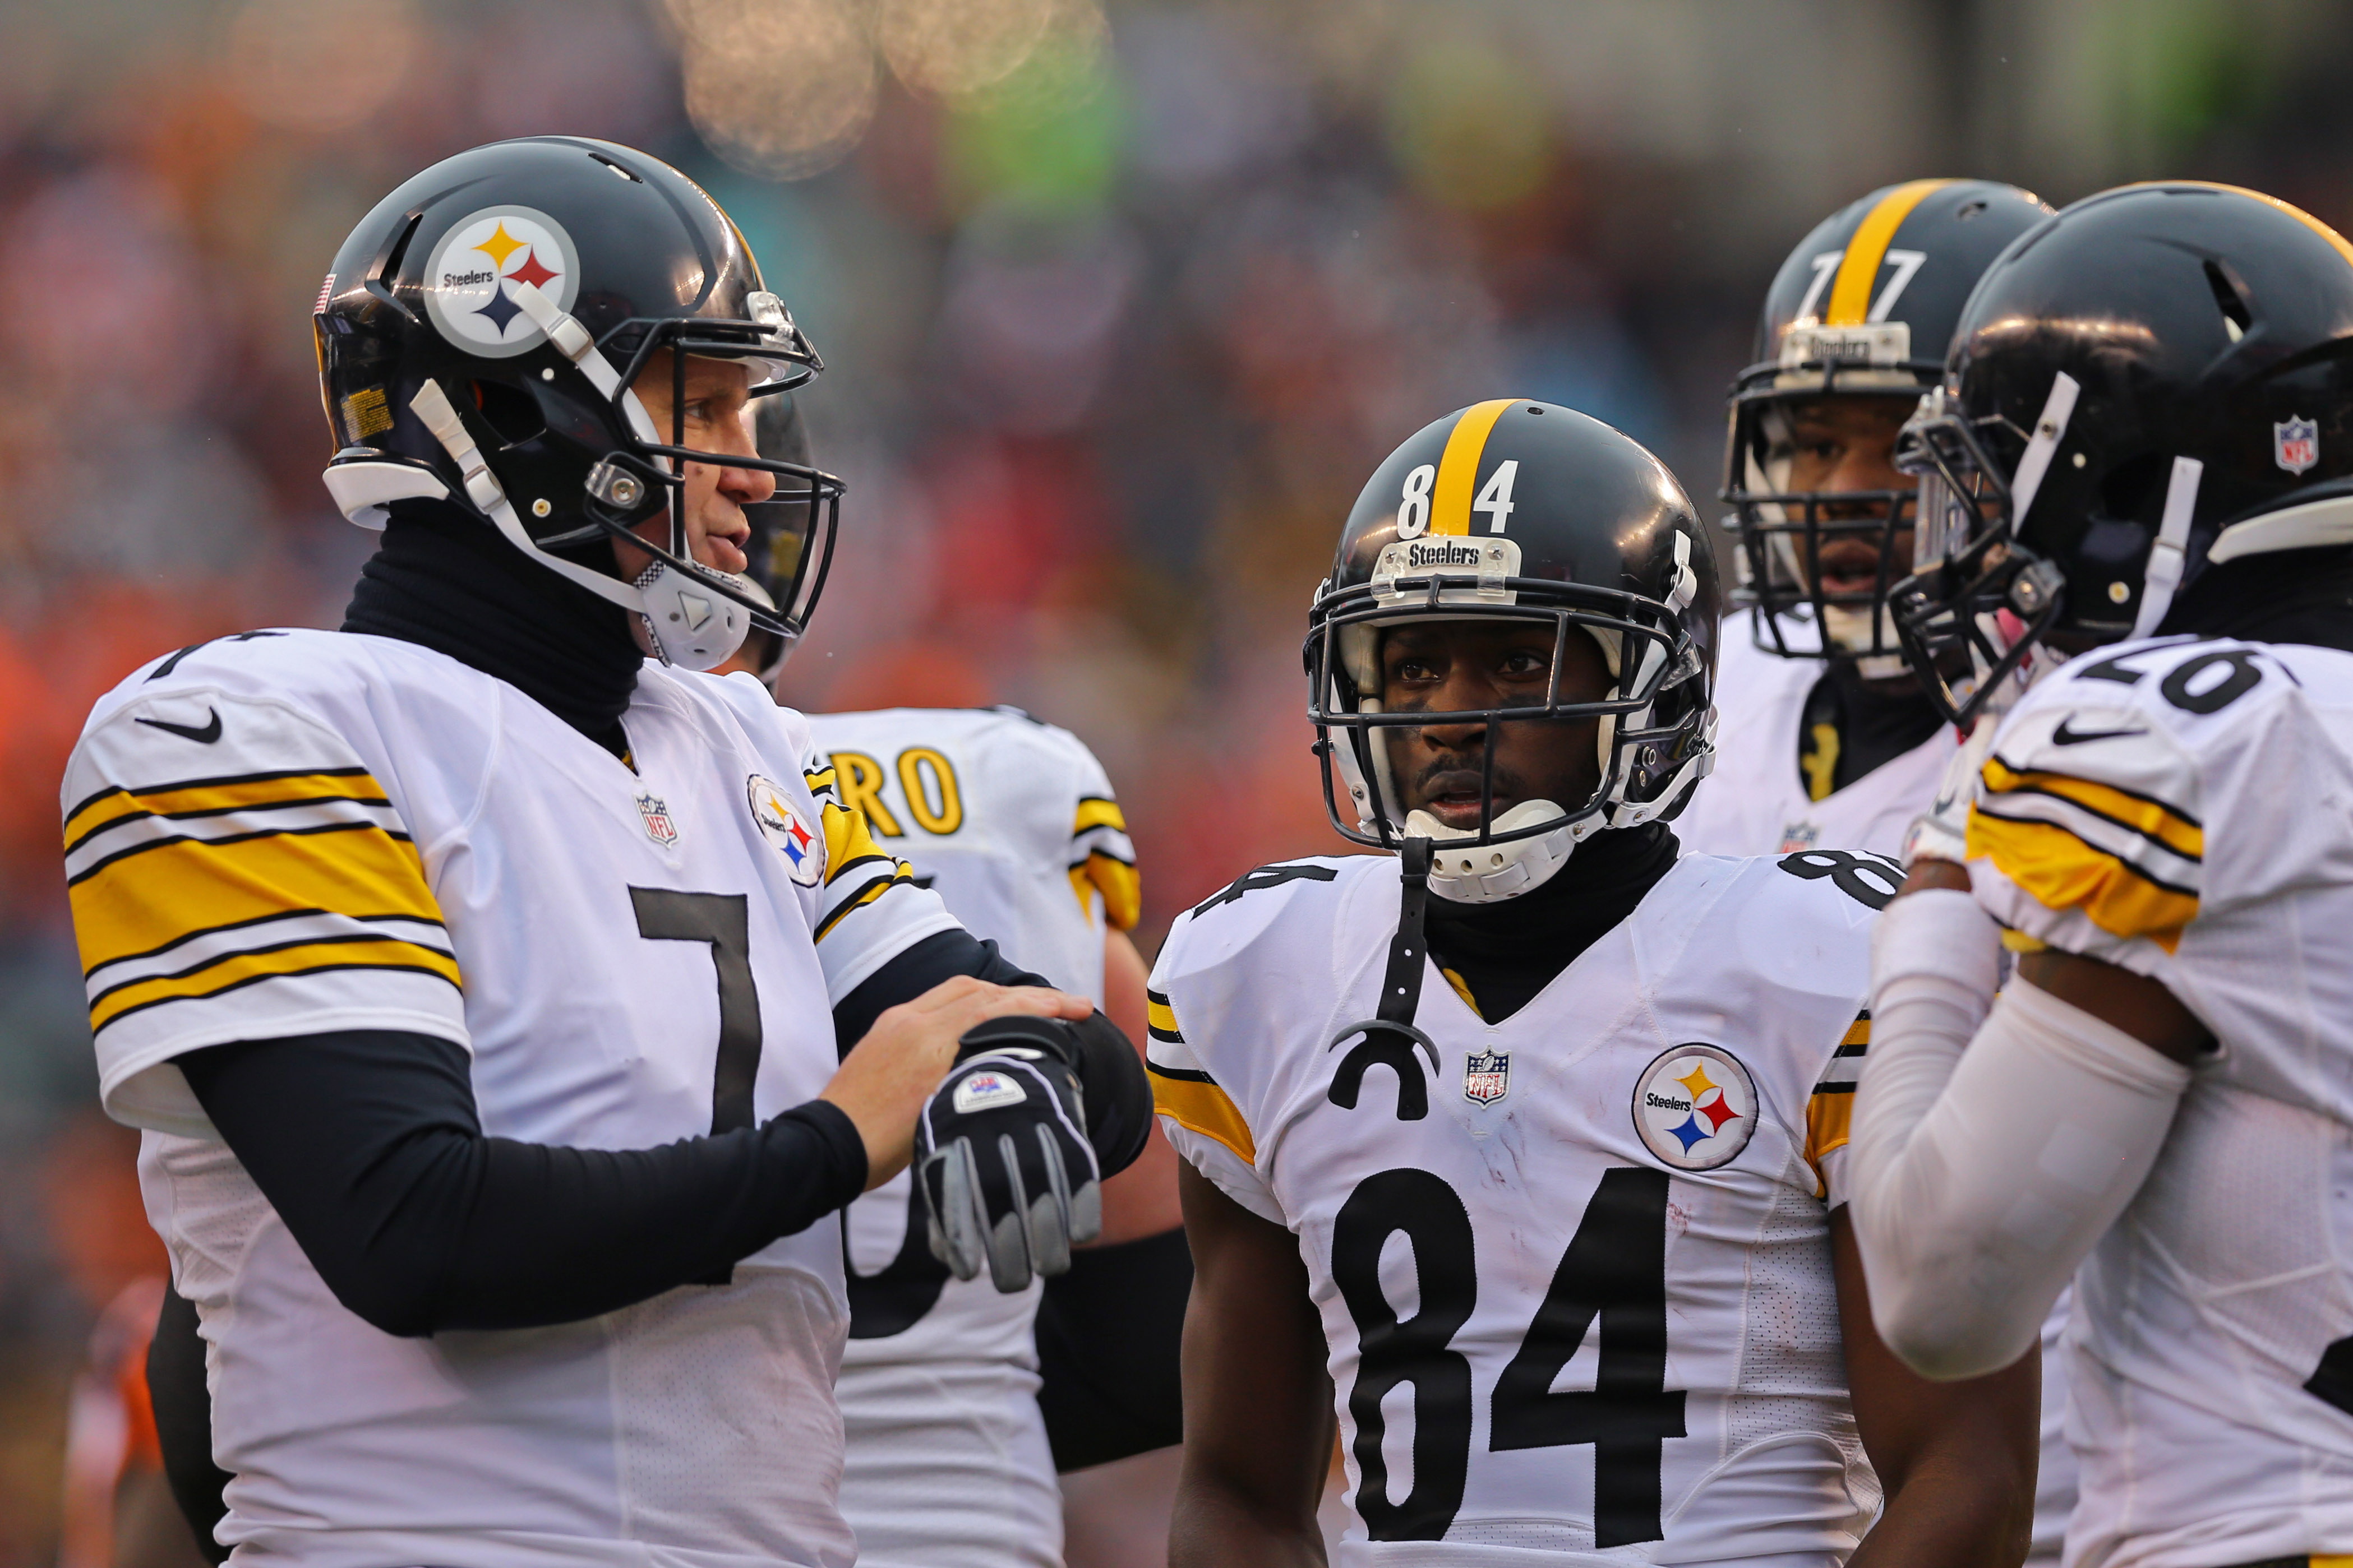 meet the steelers players names